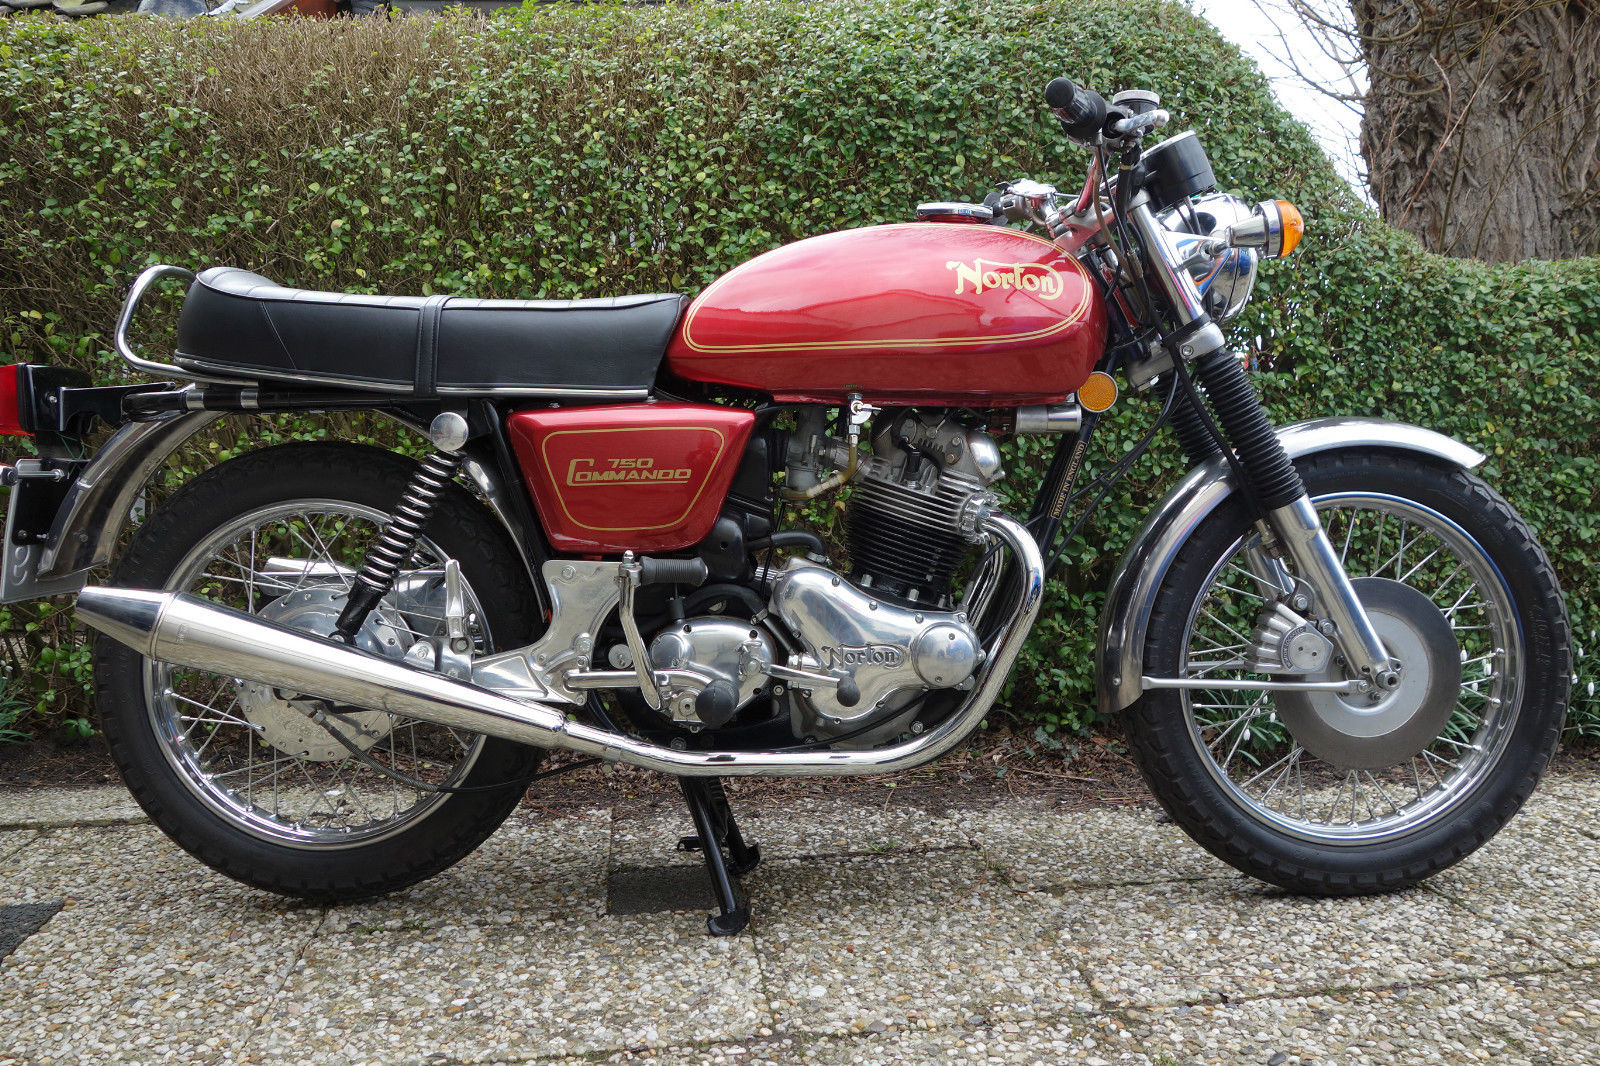 Norton Commando 750 - 1971 - Right Side View, Engine and Gearbox, Seat, Gas Tank, Timing Cover, Shocks, Frame and Forks.